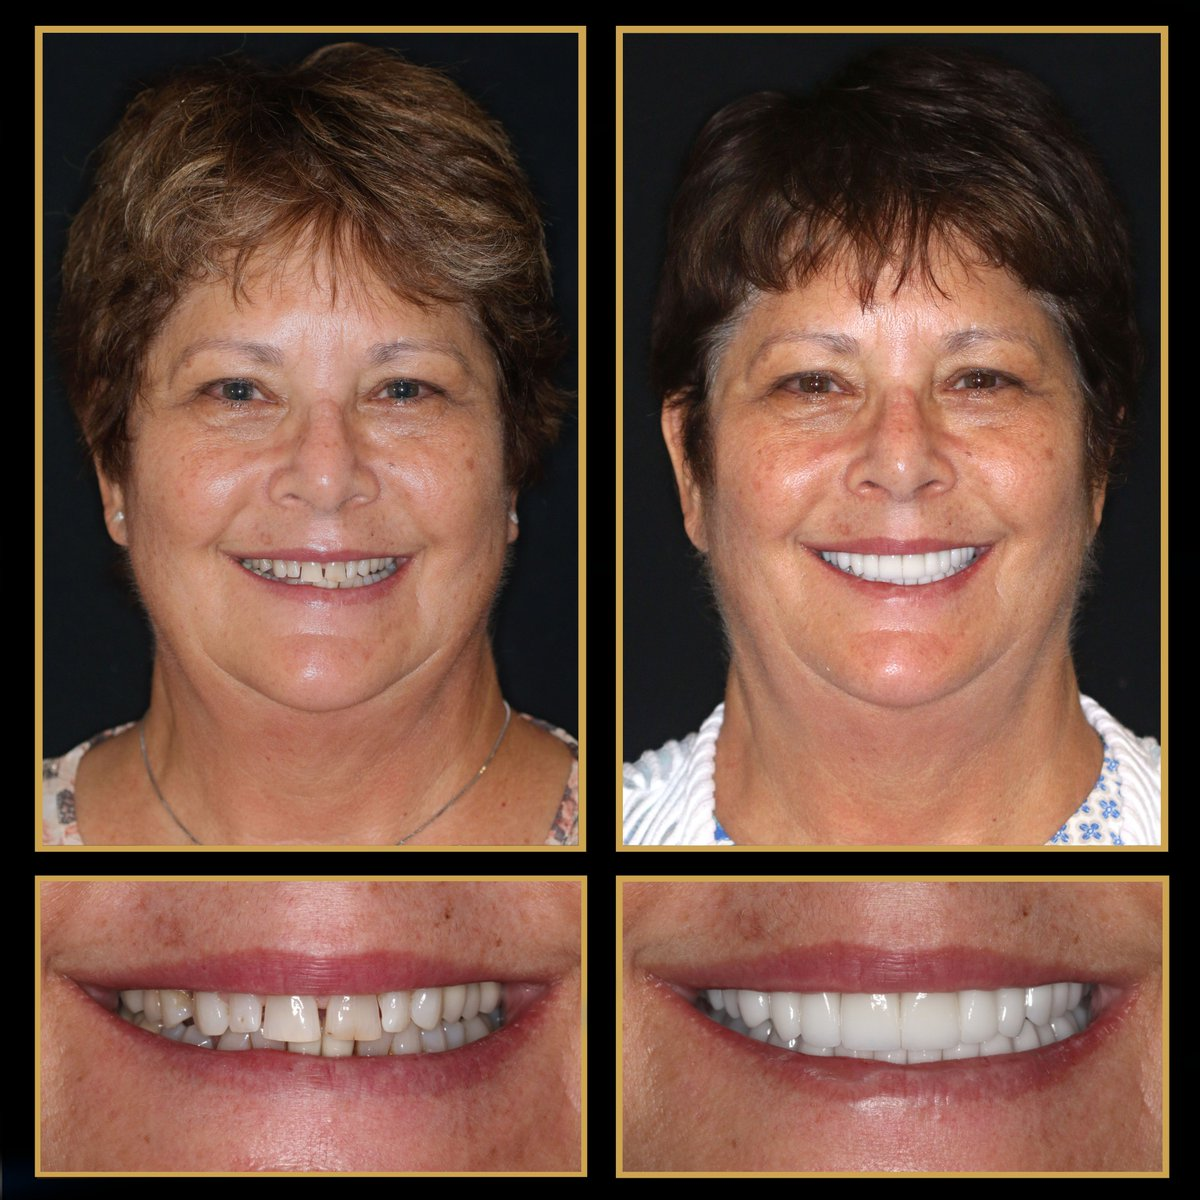 An Austin #smilemakeover can give you a whole new look in just two visits!  #Veneers, crowns, bridges, #DentalImplants and #ReconstructiveDentistry can help restore your smile back to its former glory. http://TheCosmeticDentistsOfAustin.com #CosmeticDentist #CosmeticDentistry #ATXpic.twitter.com/45NRDNo77V